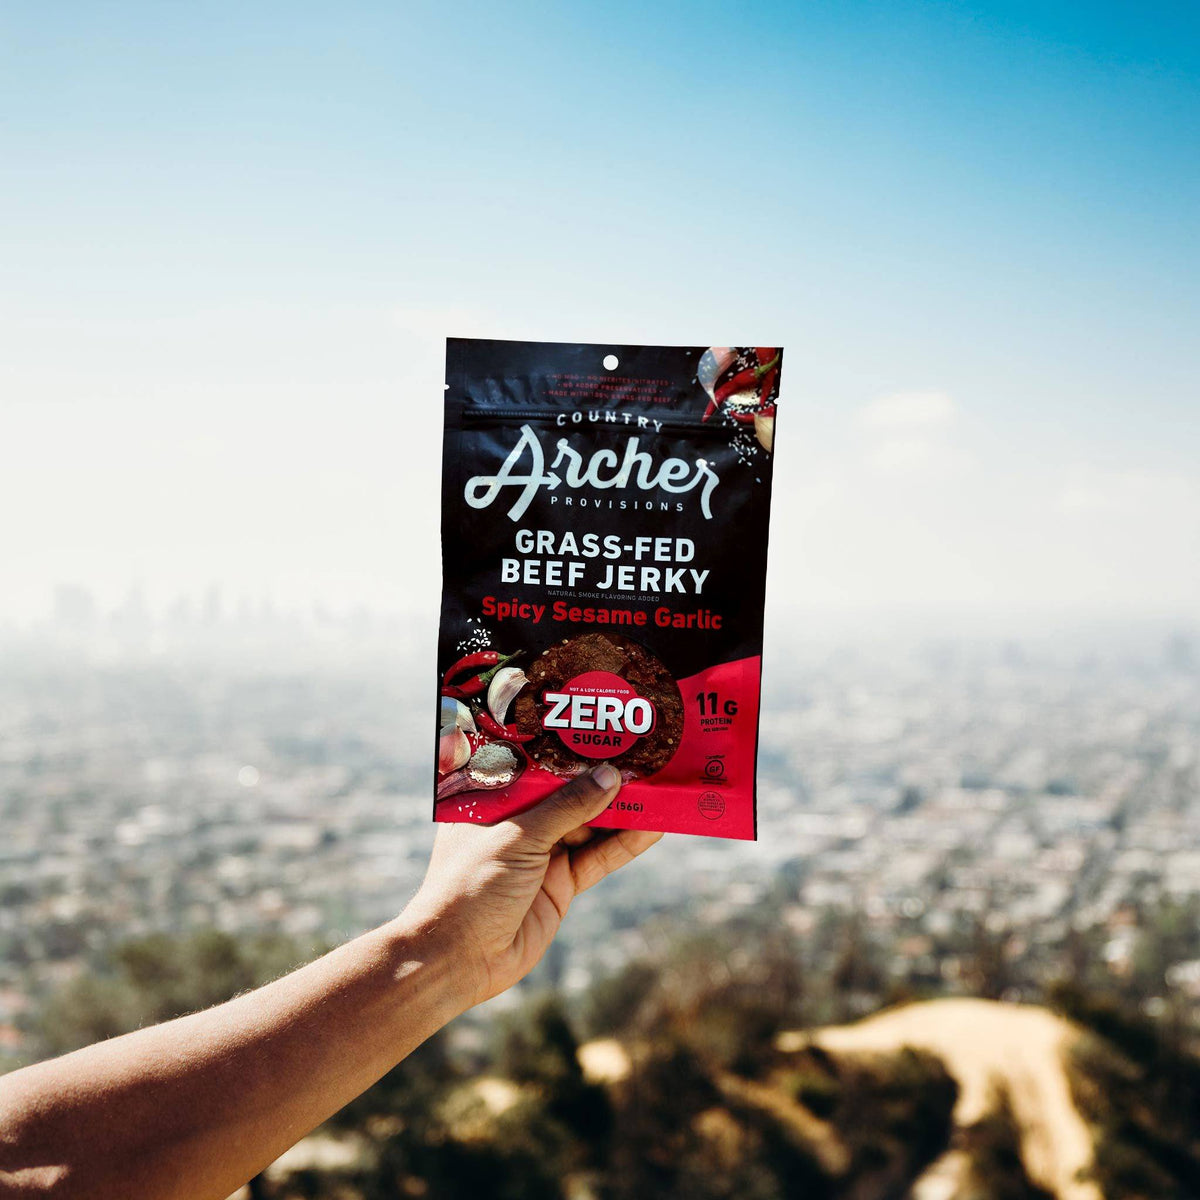 Zero Sugar Spicy Sesame Garlic Beef Jerky